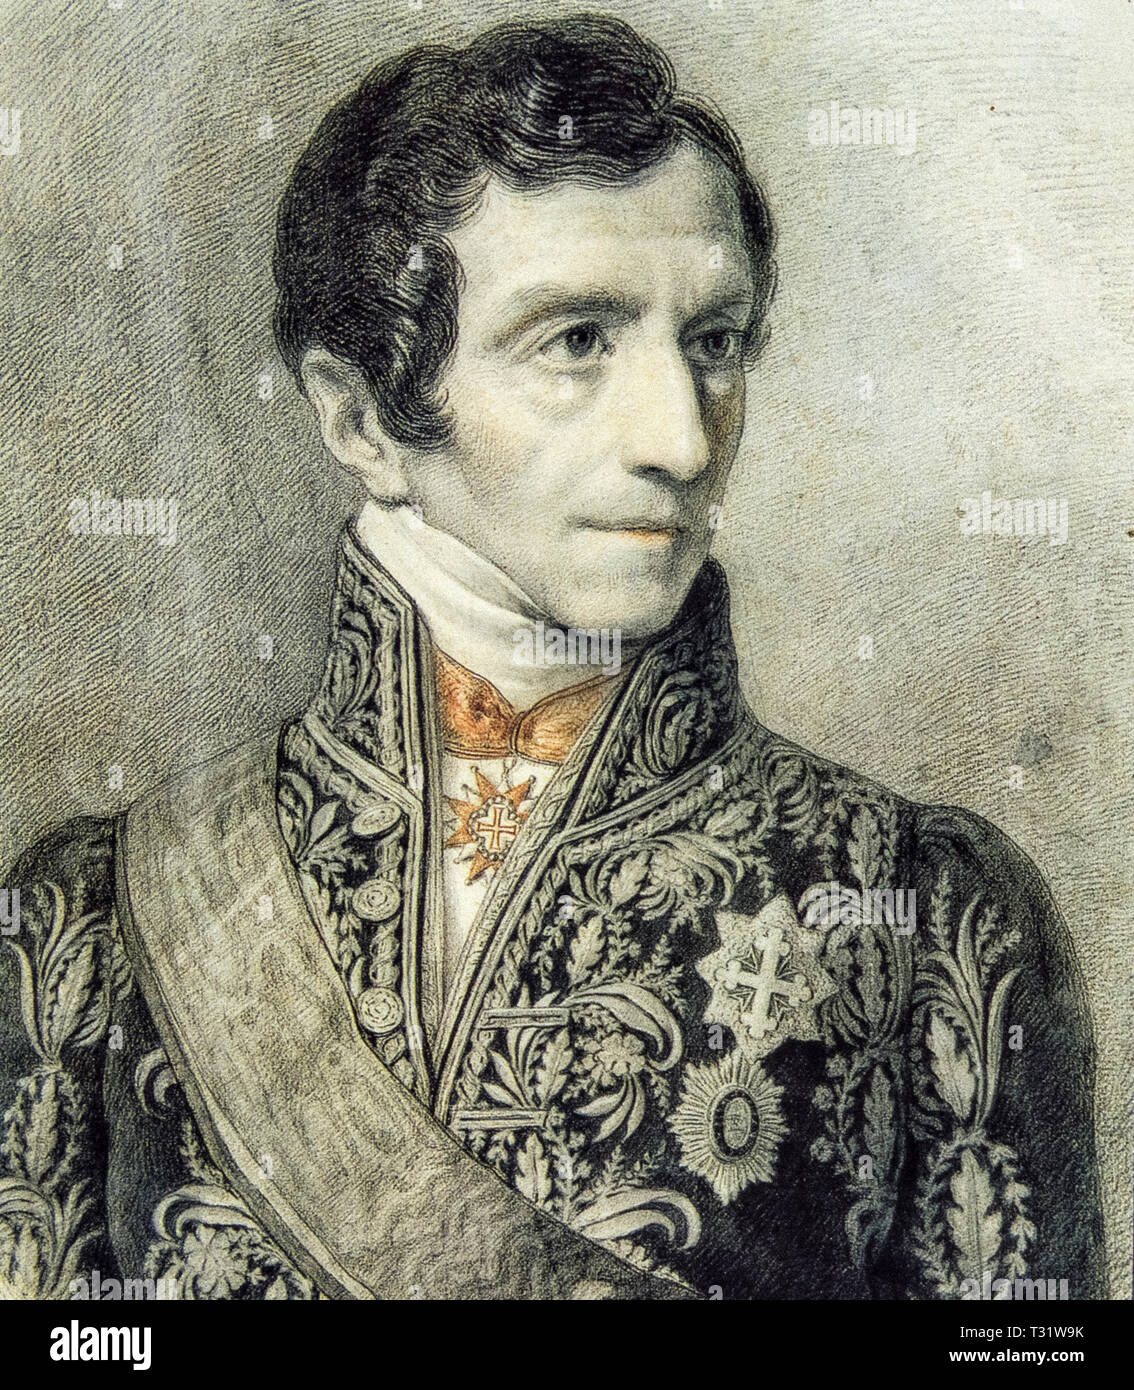 Luigi Giuseppe Barbaroux known as Giuseppe Barbaroux (Cuneo, 6 December 1772 - Turin, 11 May 1843) was an Italian lawyer, jurist, lawyer general at the Senate of Genoa in 1815 and then ambassador to Rome from 1816 to 1824 - Stock Image